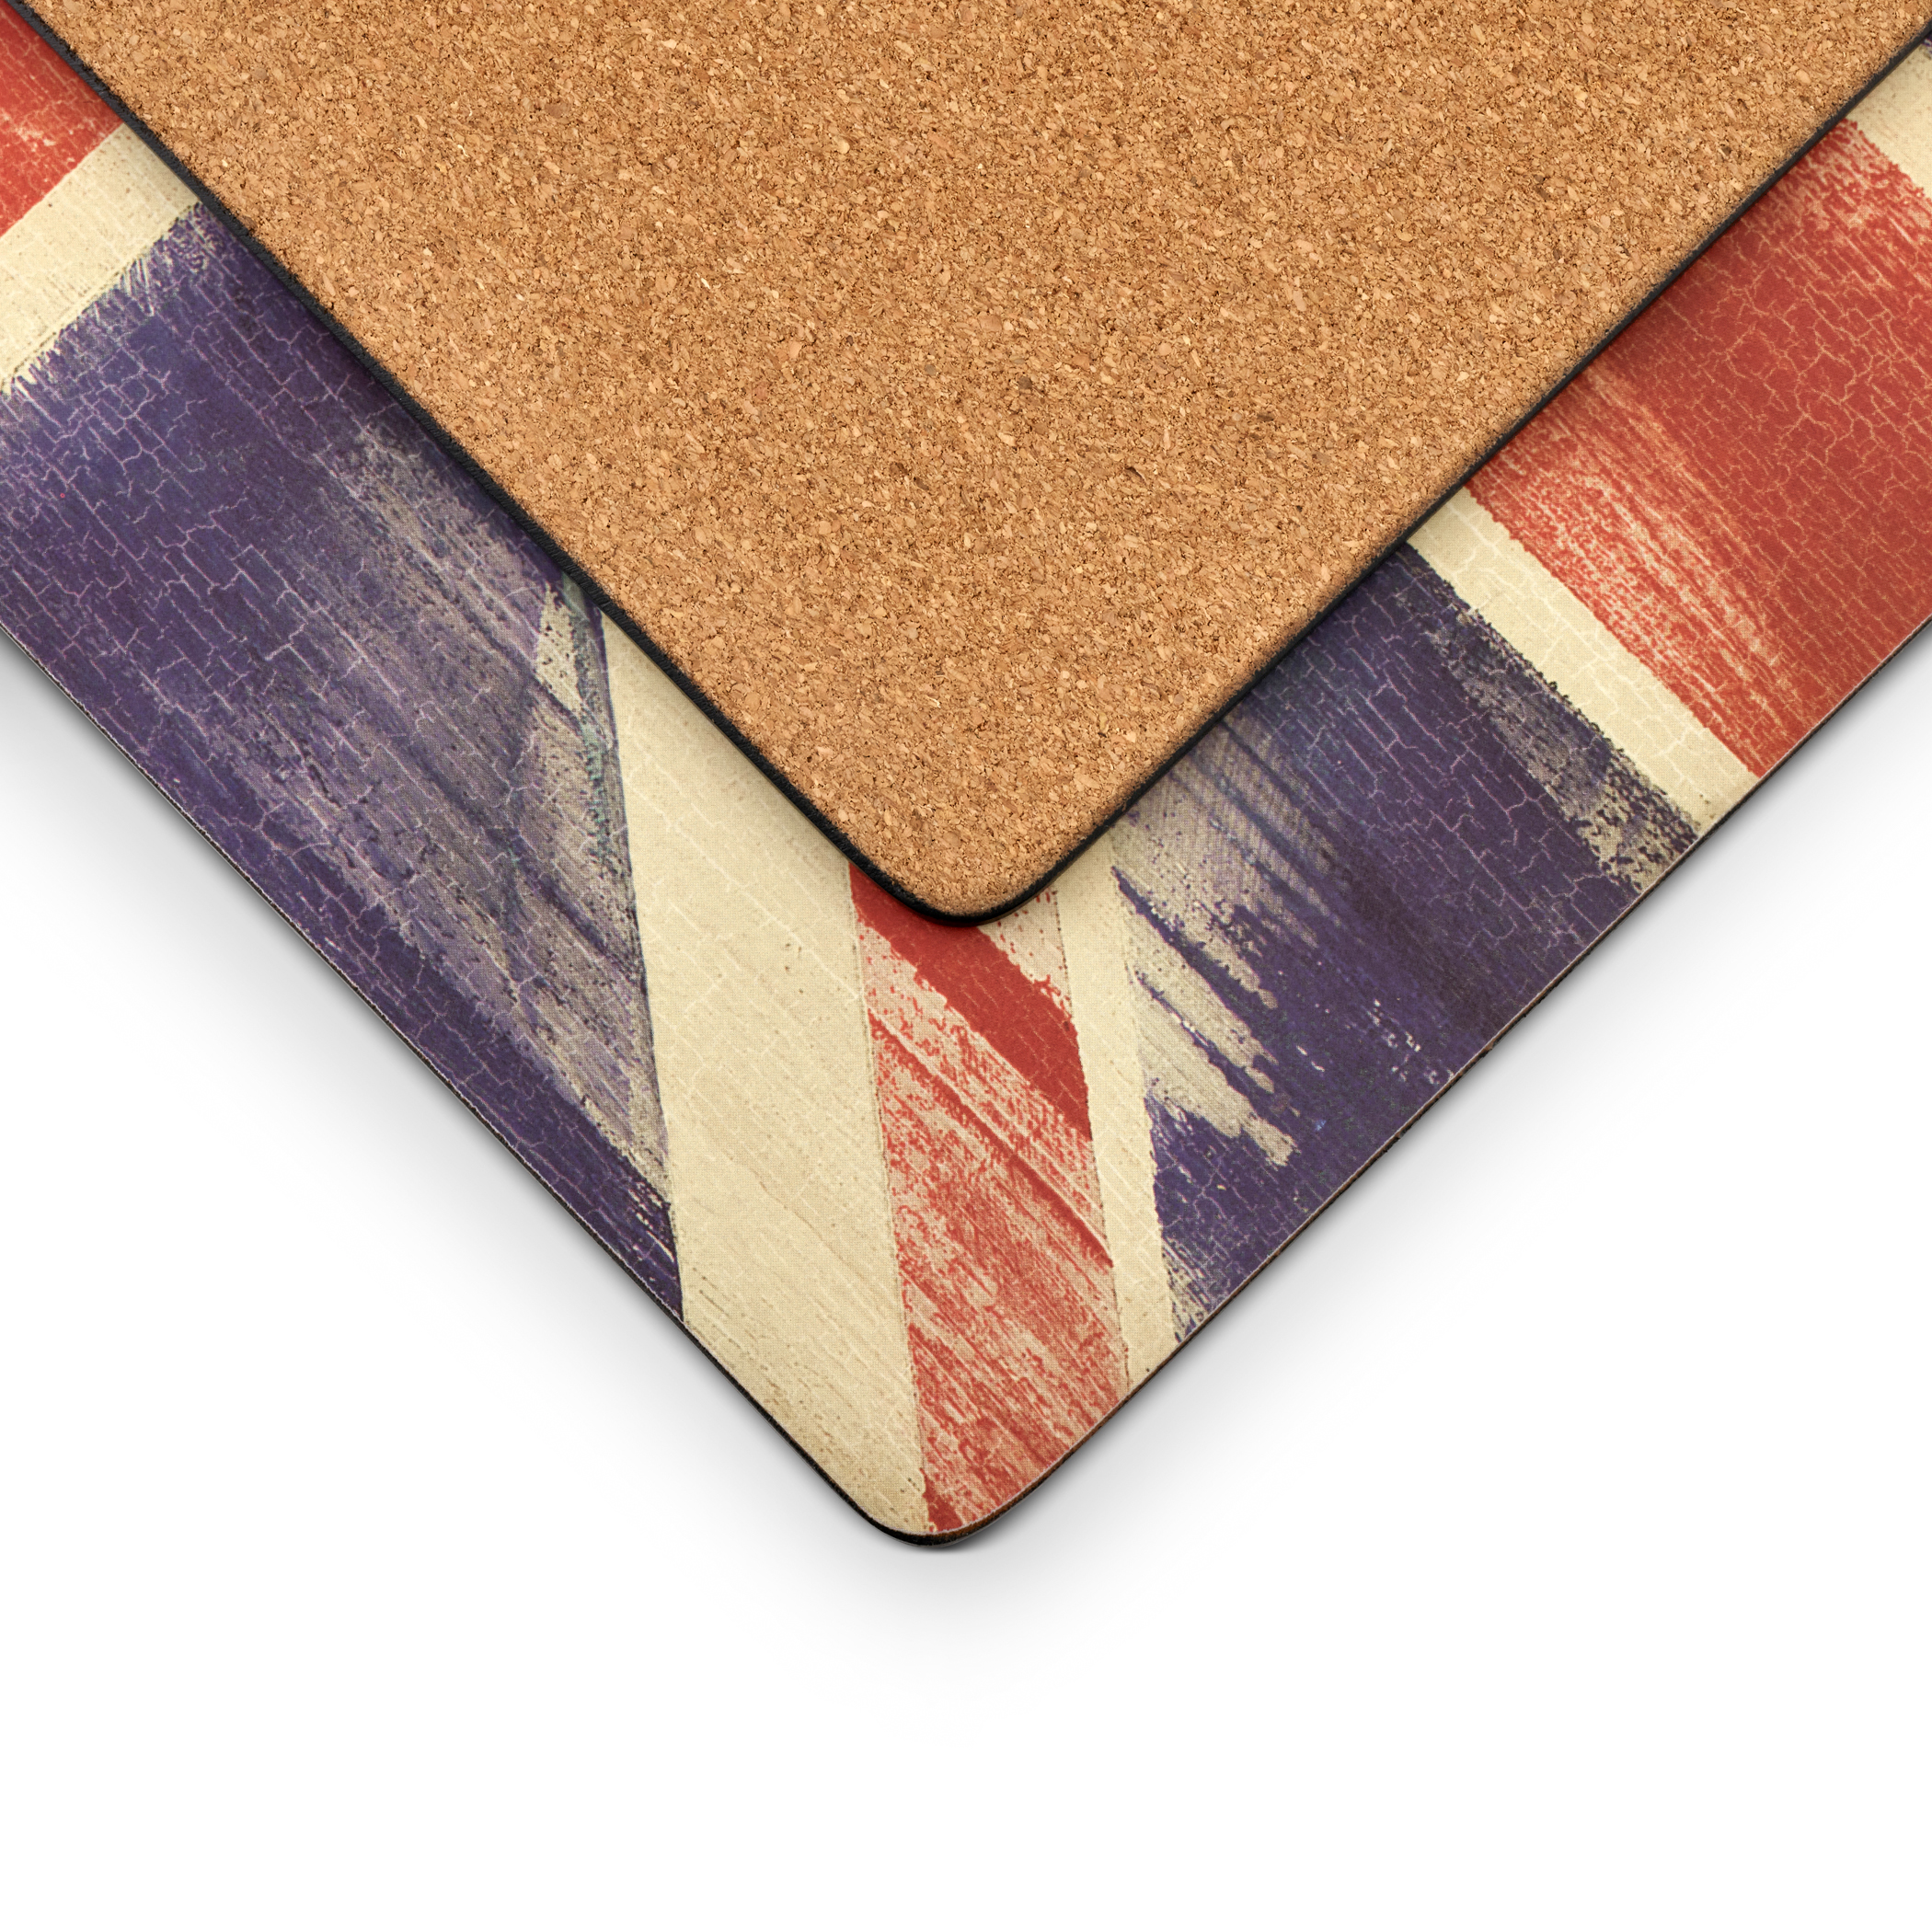 Pimpernel Union Jack Placemats Set of 4 image number 2